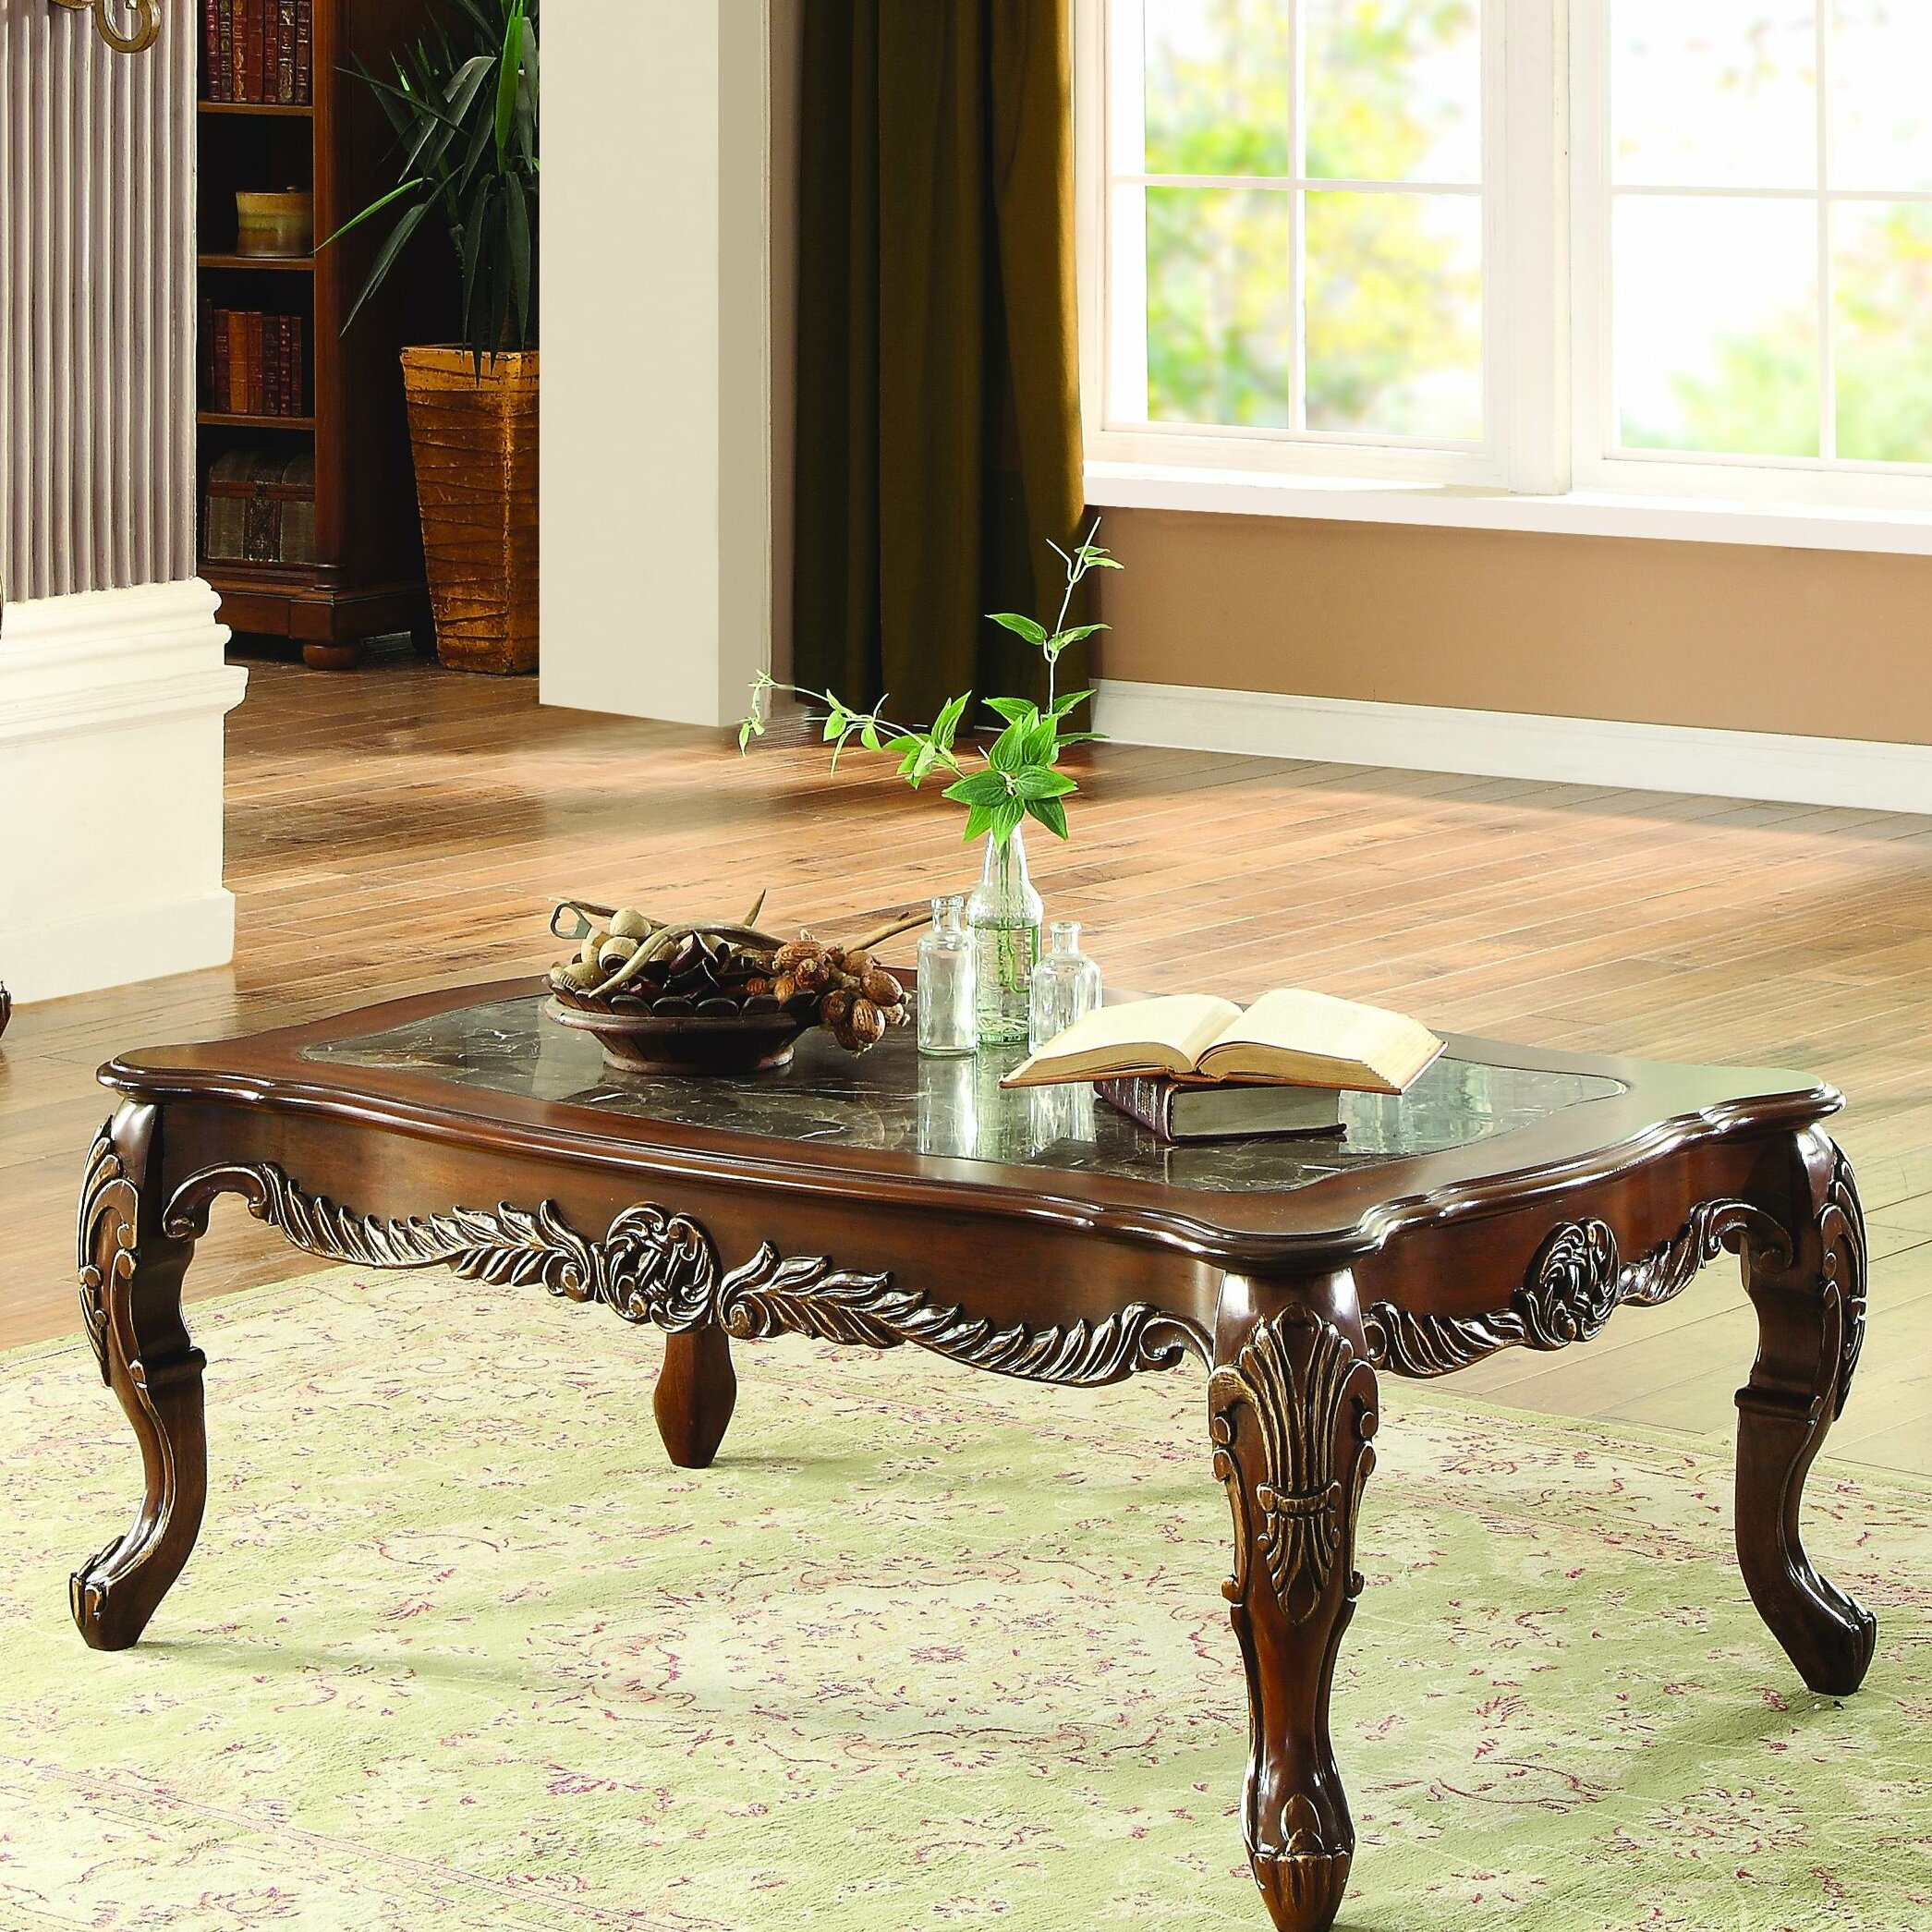 Marble Coffee Table Marks And Spencer: Homelegance Logan Coffee Table